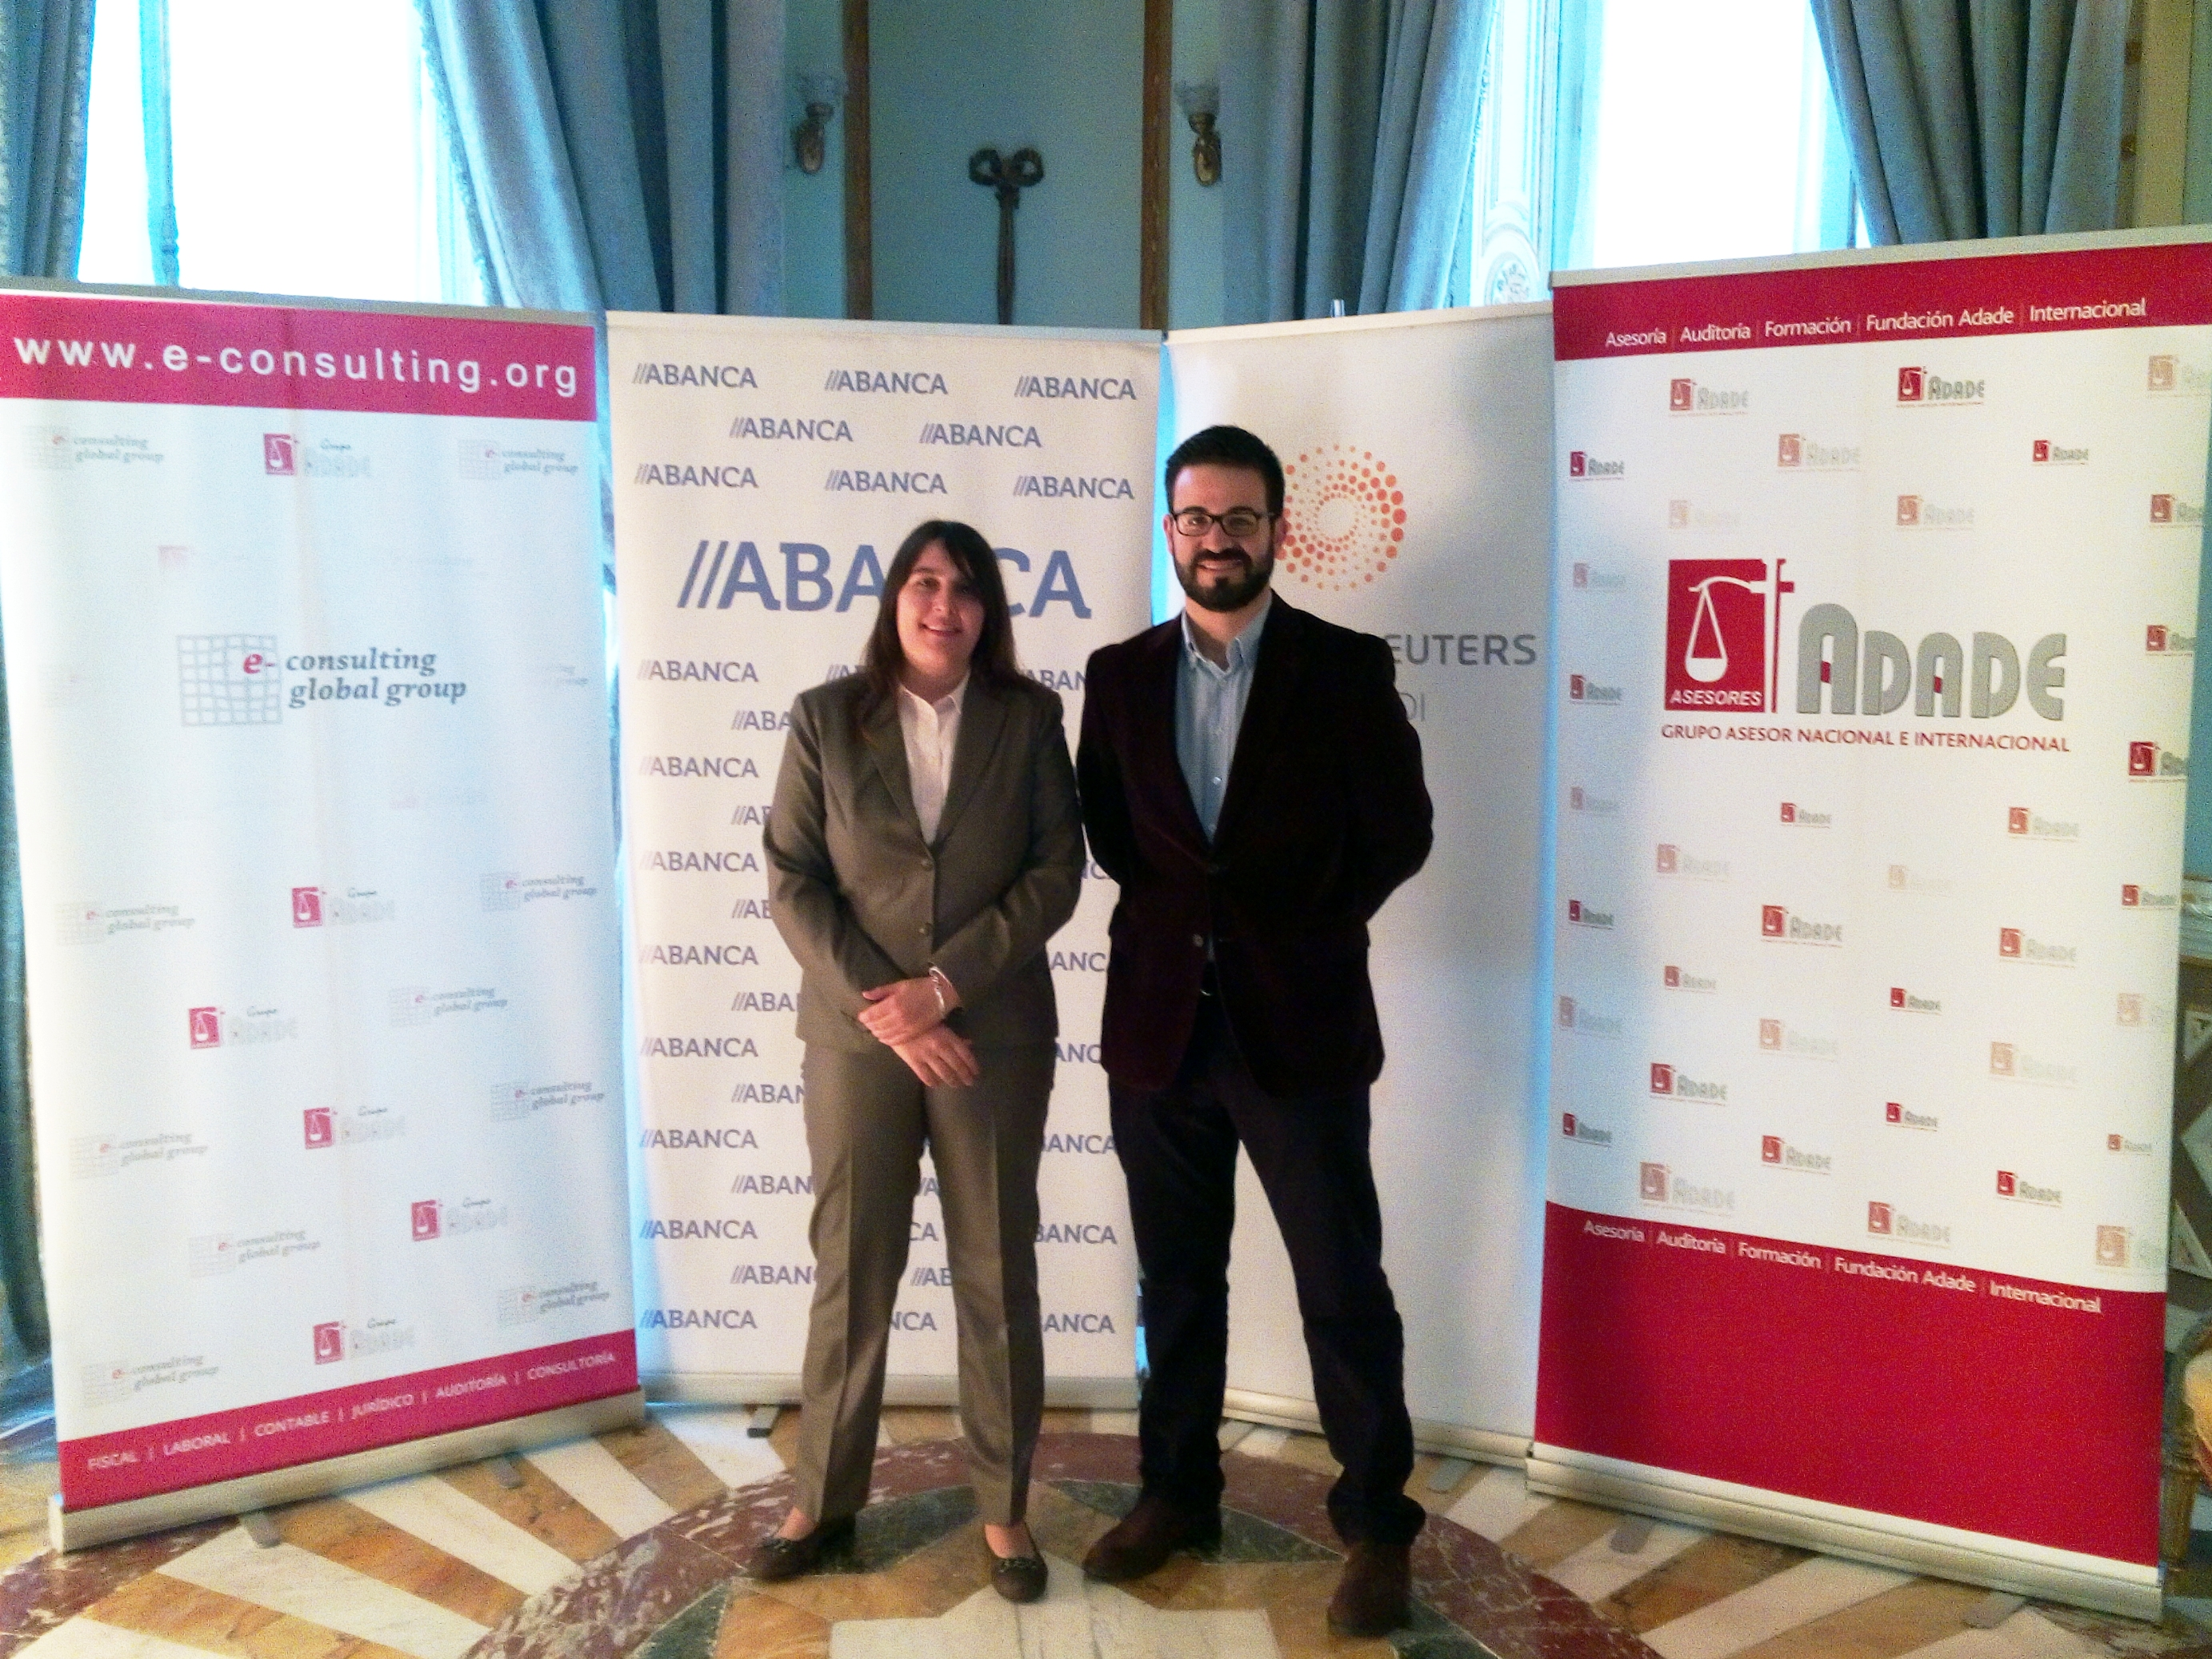 Firma eConsulting60